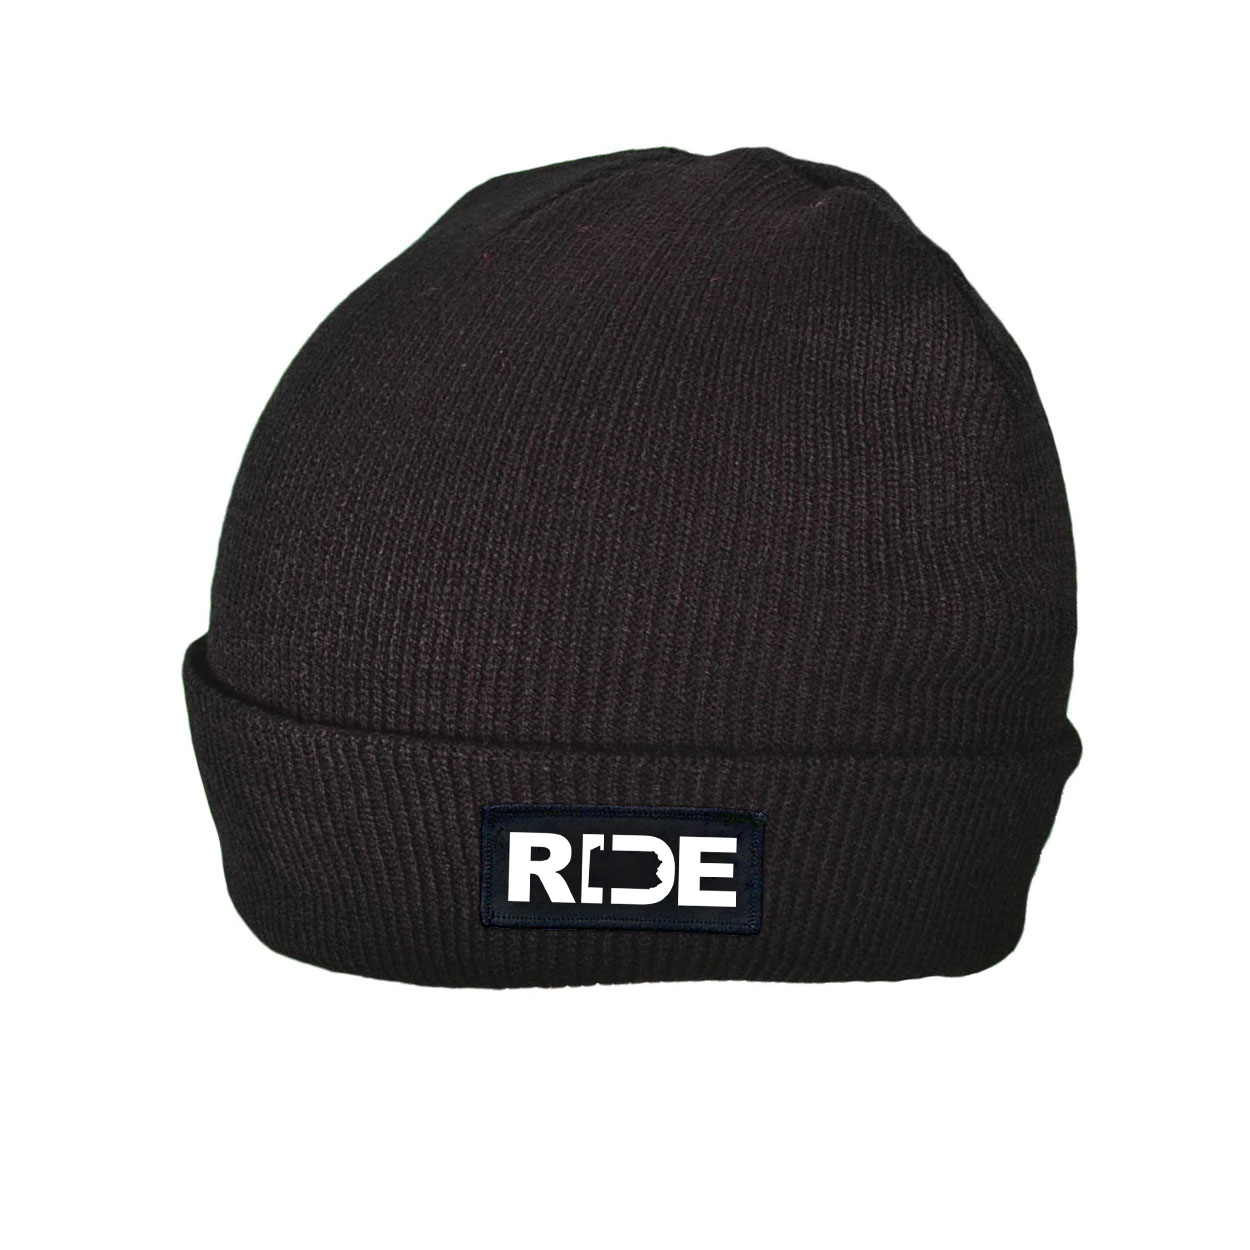 Ride Pennsylvania Night Out Woven Patch Roll Up Skully Beanie Black (White Logo)